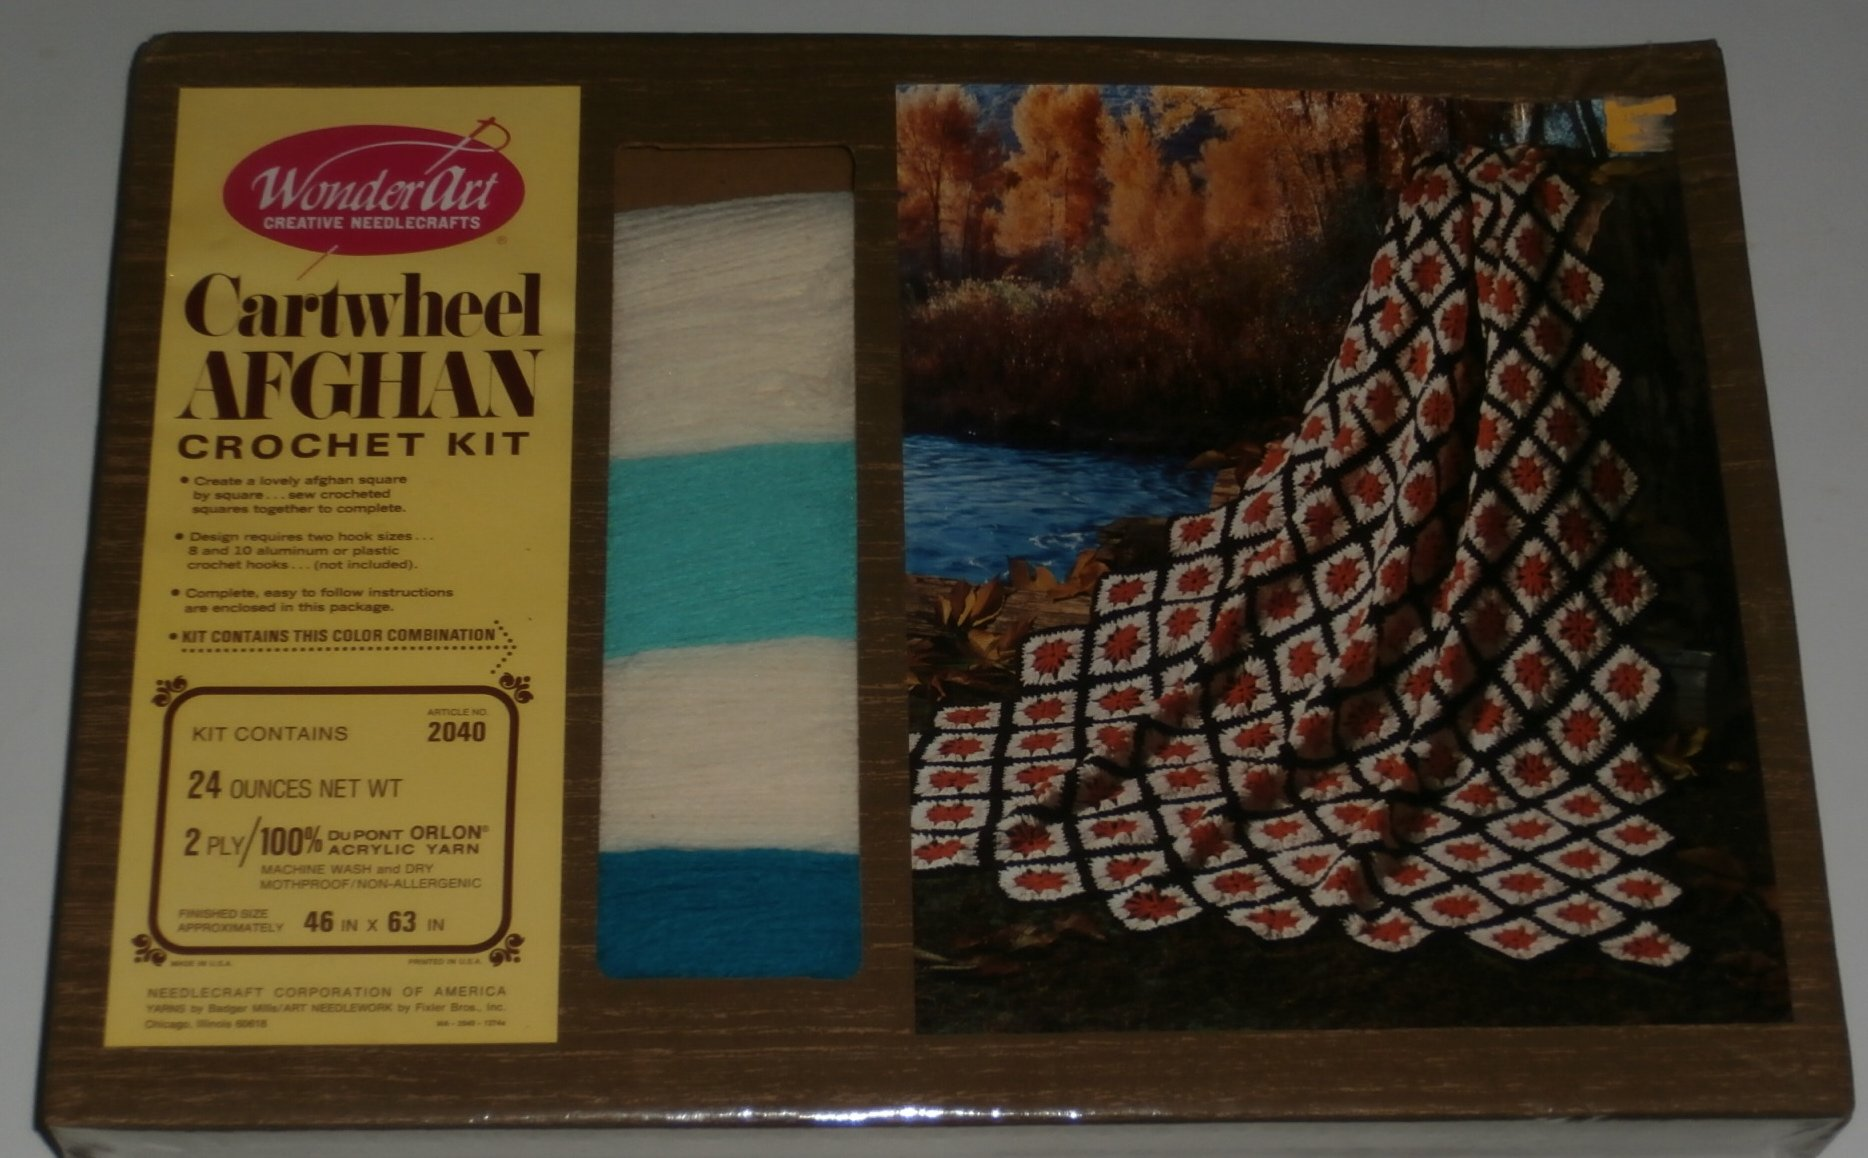 Cartwheel Afghan Crochet Kit - Teal Blues and Off-White